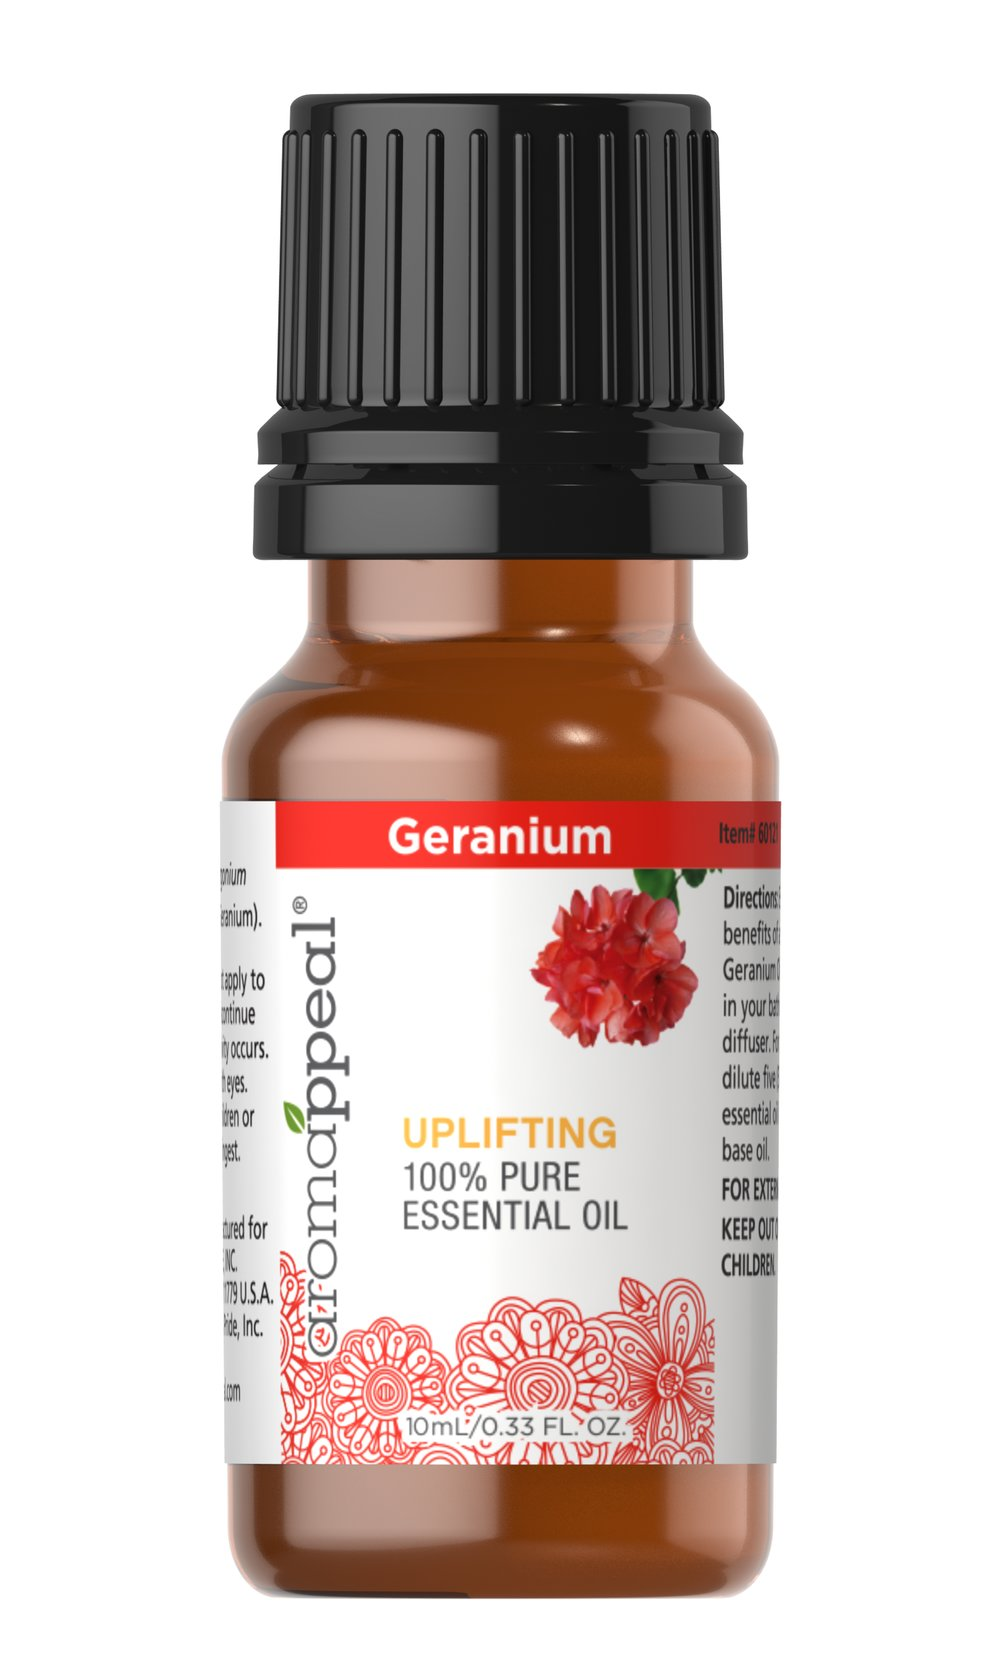 "Geranium 100% Pure Essential Oil <p>Indulge in aromatic paradise with the strong yet sweet essence of Geranium. Geranium has an uplifting scent that will invigorate your senses. This cleansing oil has traditionally been used to encourage proper circulation of the skin. </p><ul><li><span class=""bold-pink"">Traditional Uses:</span> Cleansing and purifying, lymph circulation, proper circulation to the skin, uplifting.  </li><li><span class"